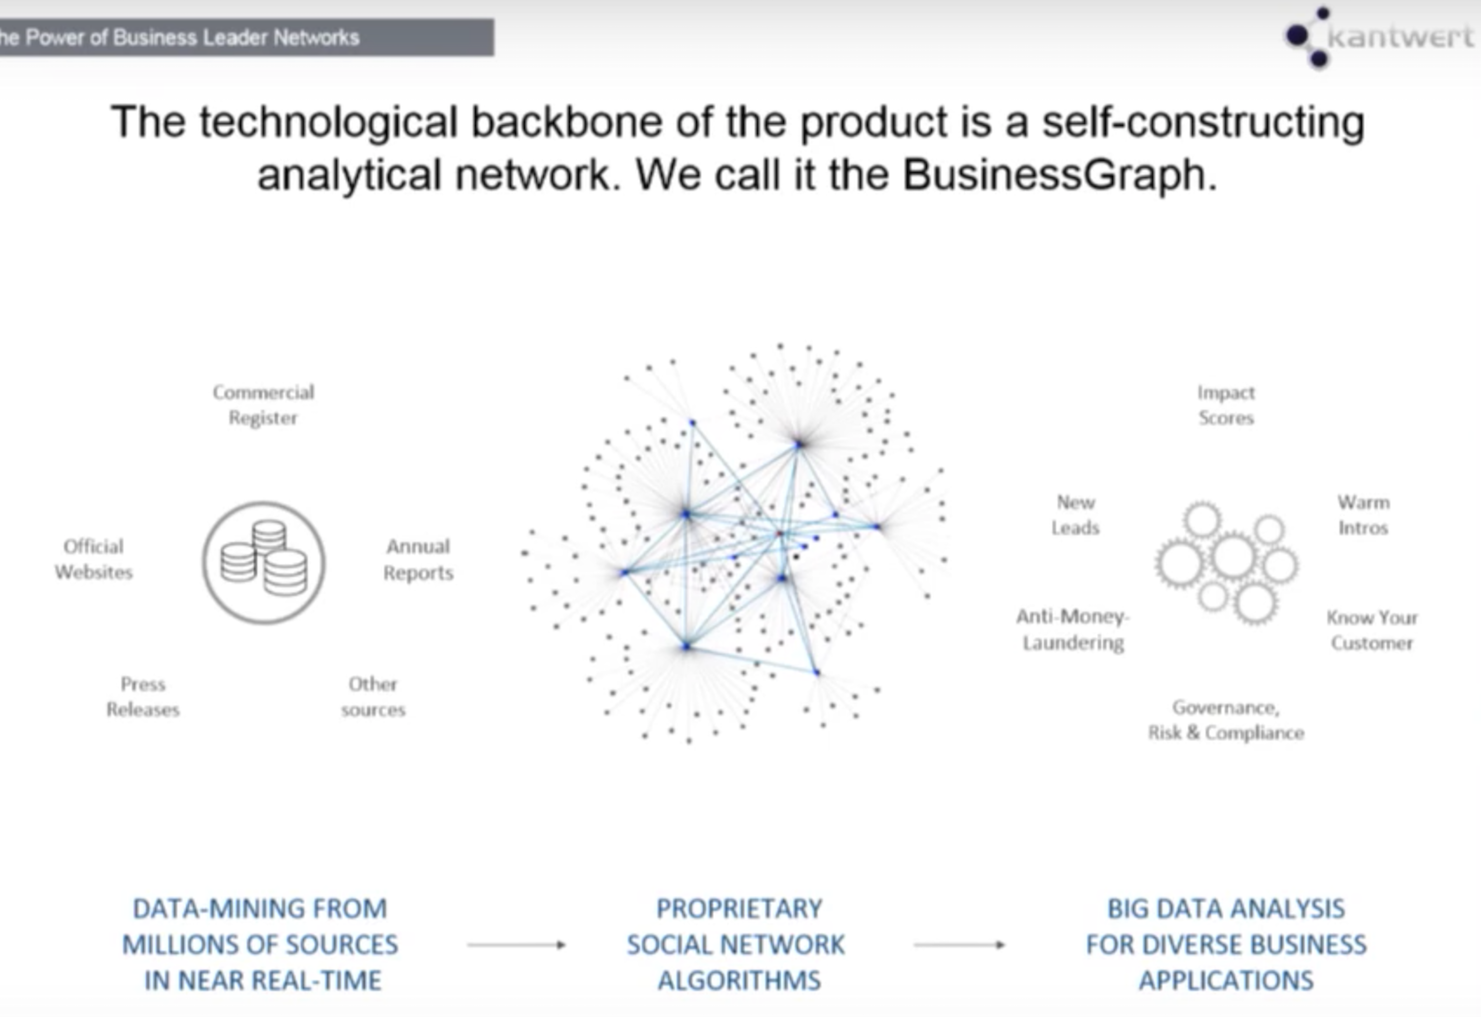 Watch Tilo Walter's presentation on how to harness graphs to build new business connections